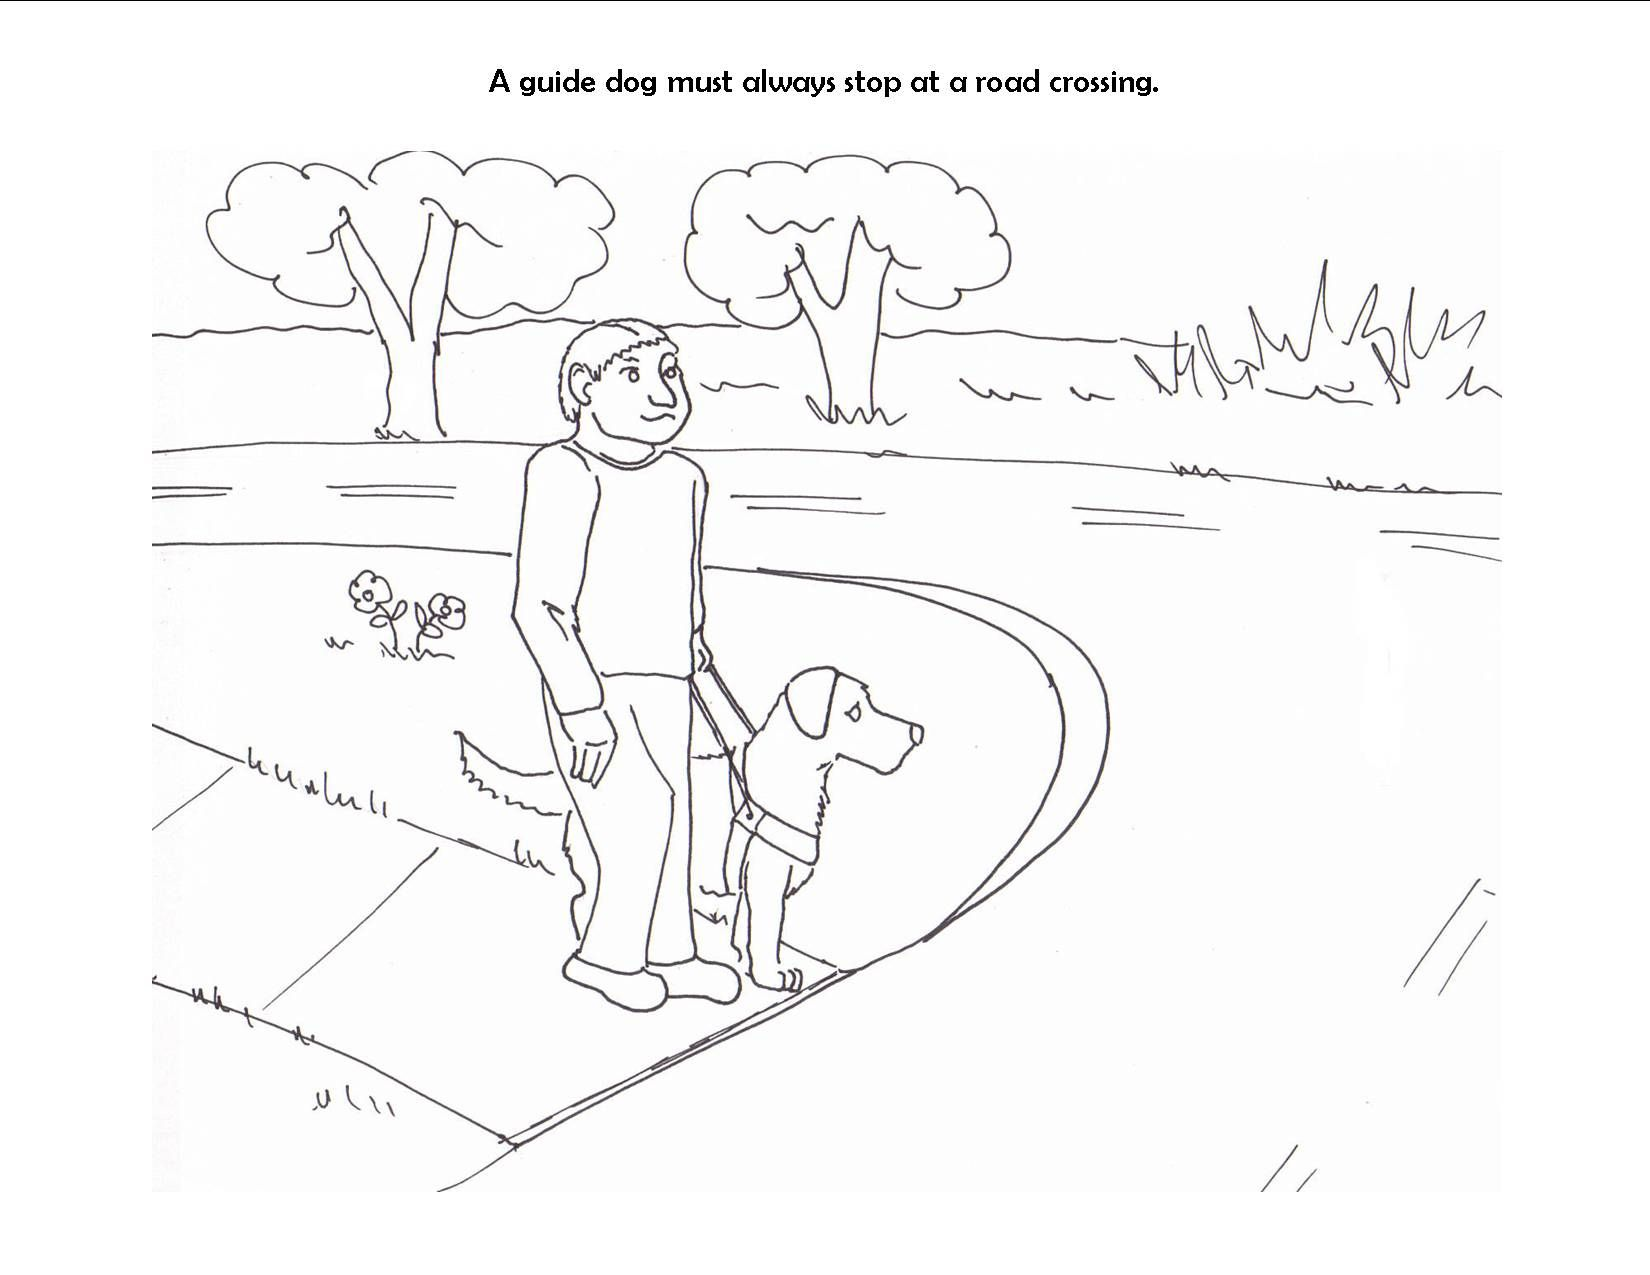 Pin By Megan Viloria On Animal Aided Education Kids Pages Guide Dog Dog Coloring Page